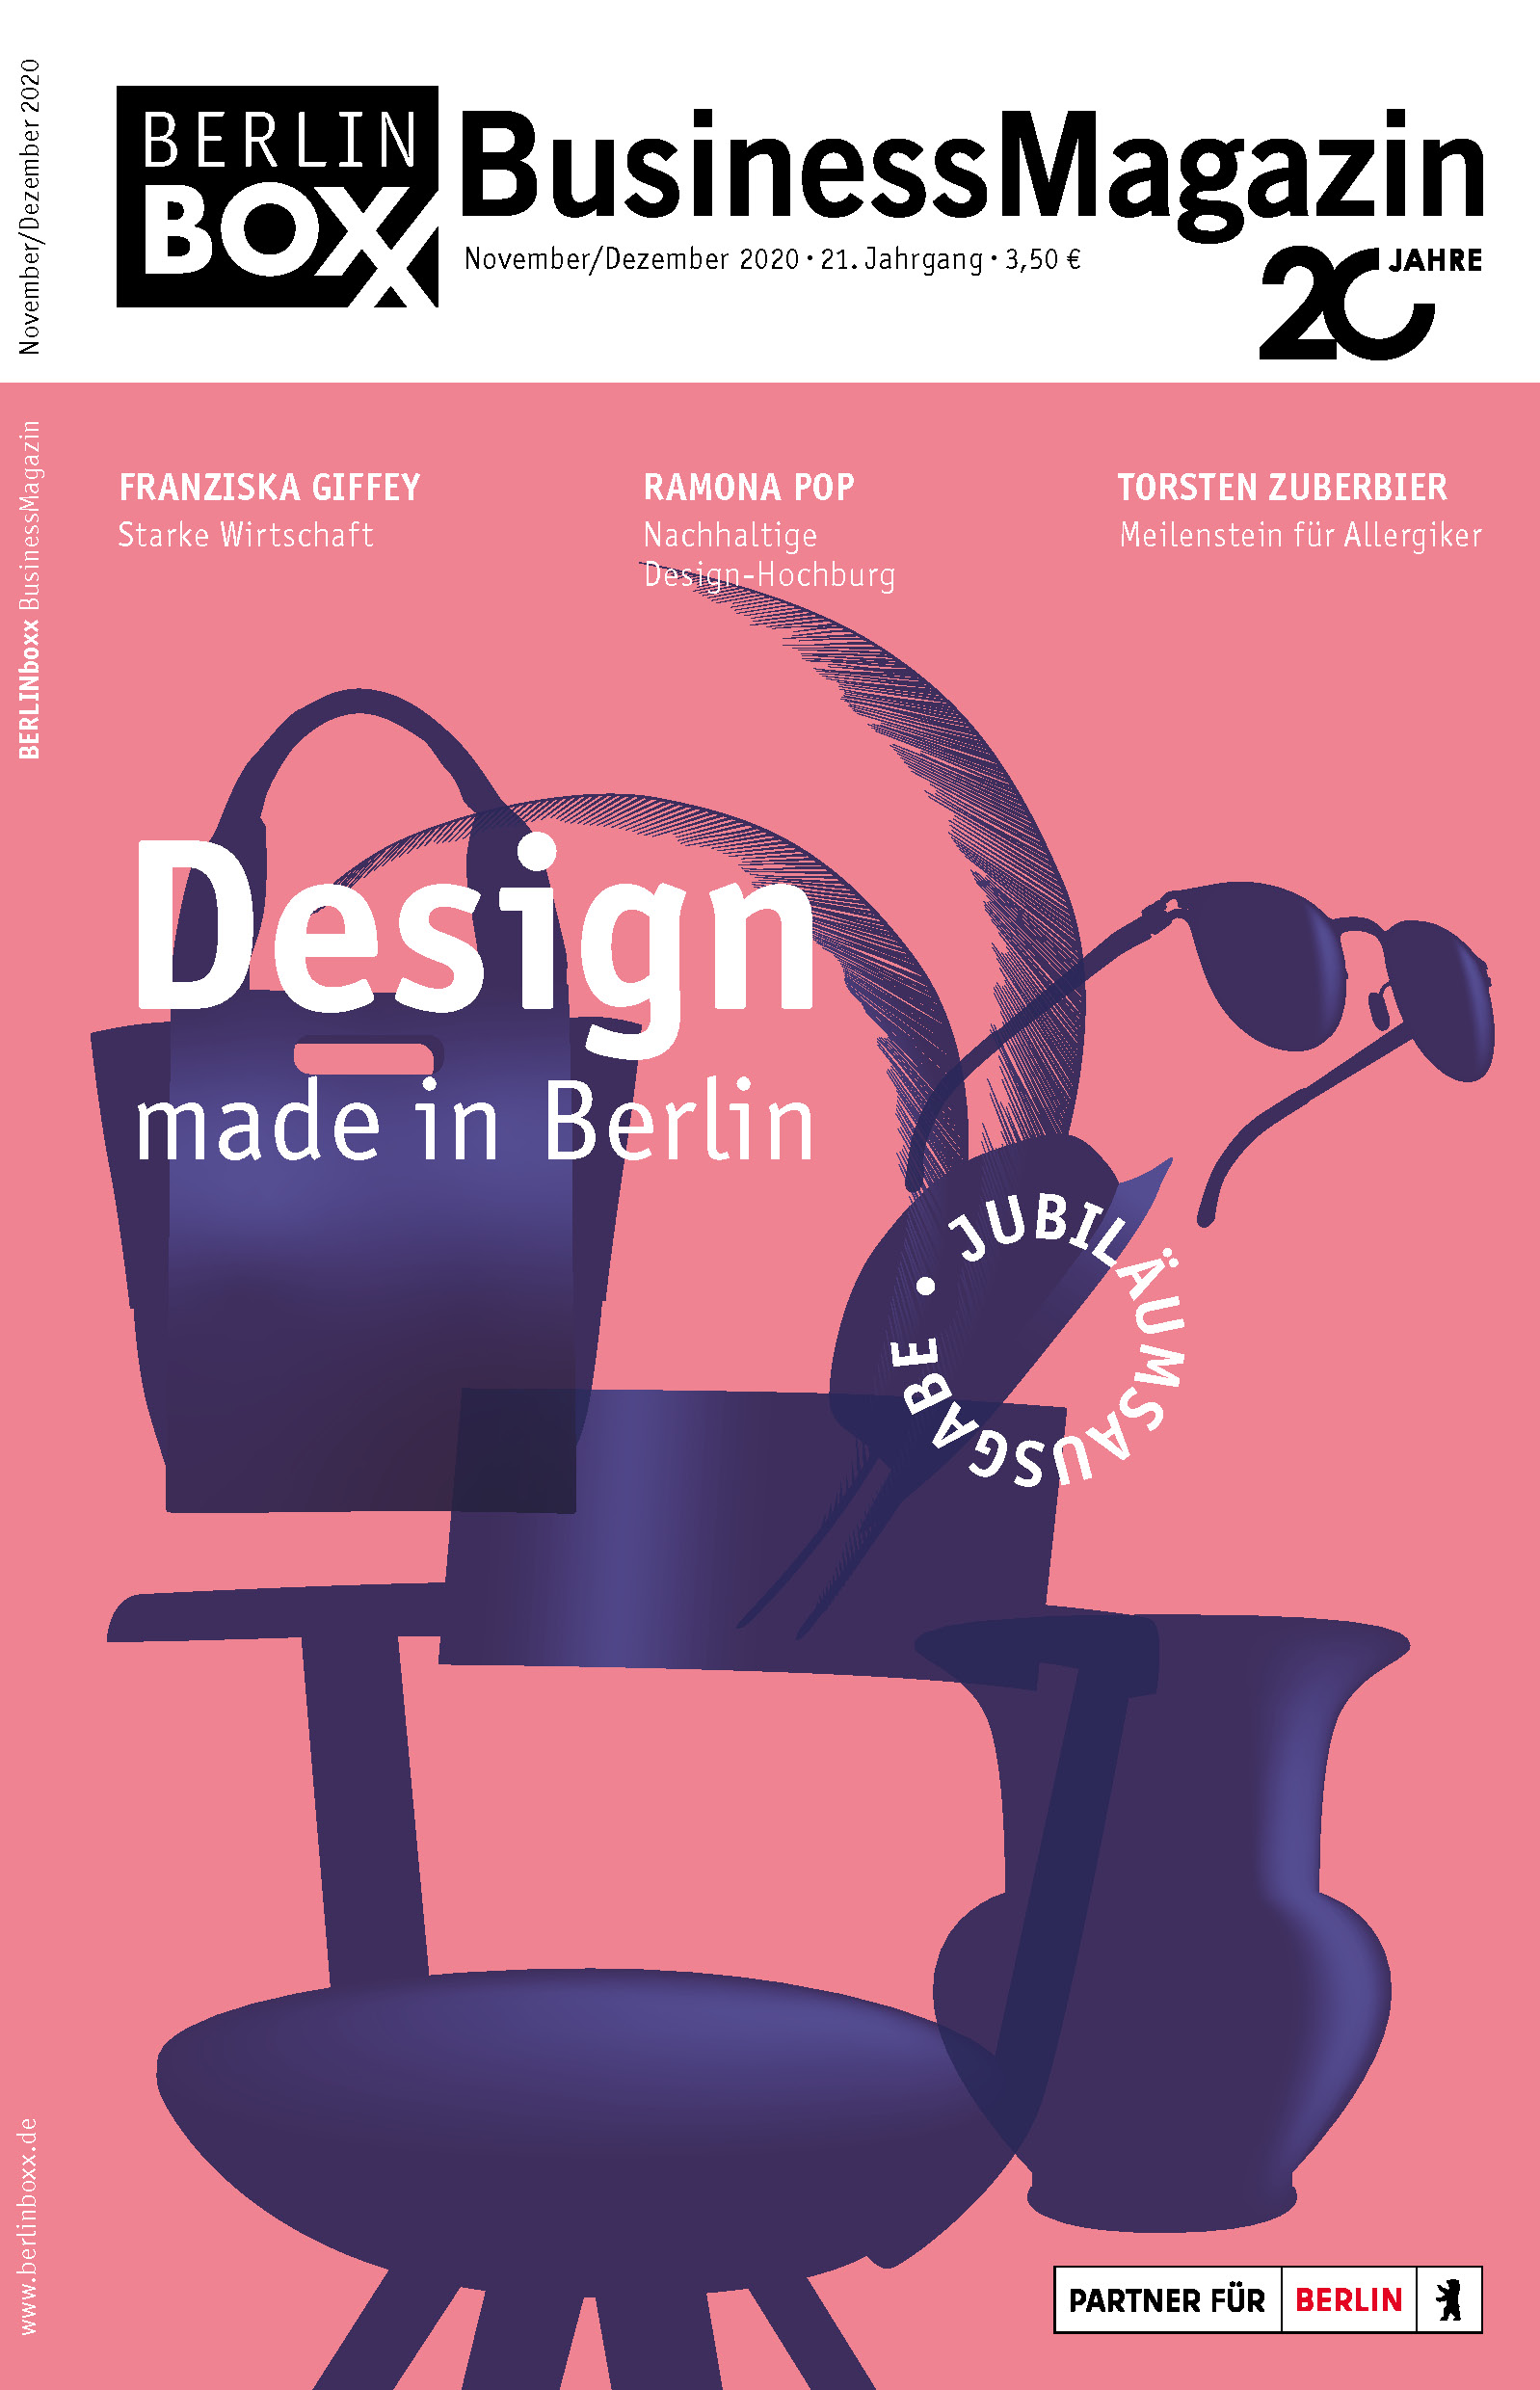 Design made in Berlin